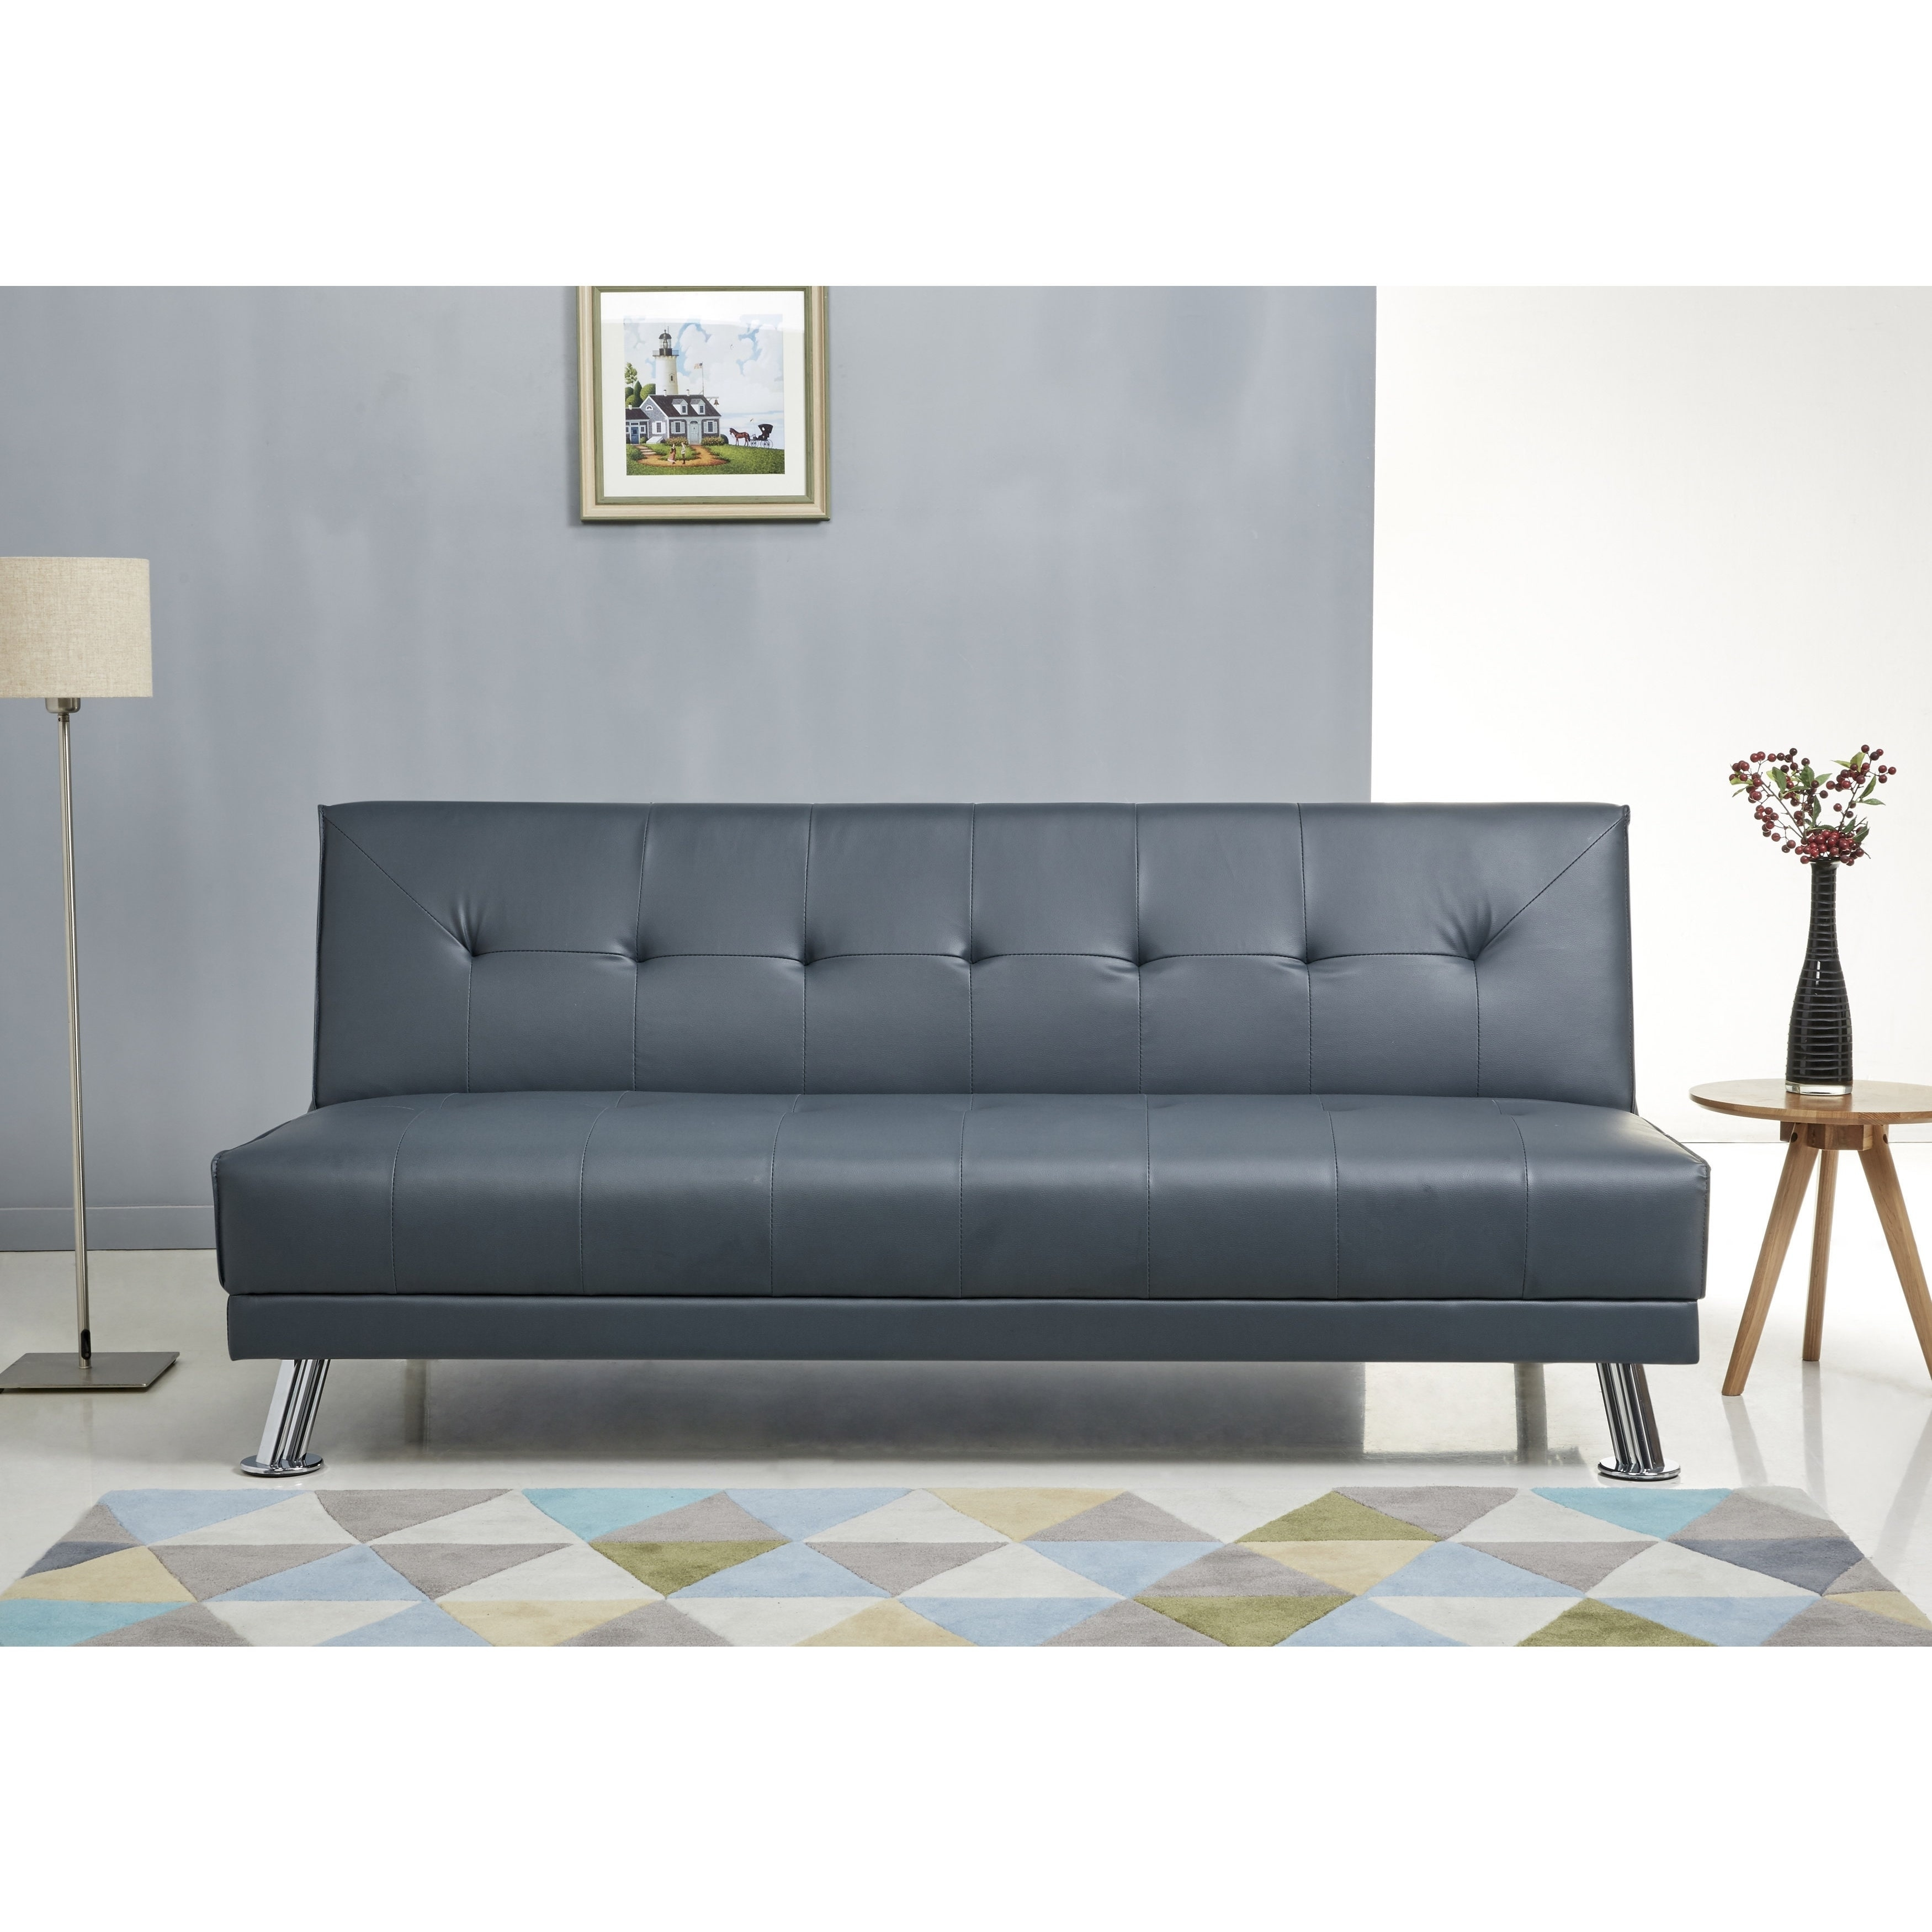 Blue Leather Sofa Bed Beautiful Blue Leather Sofa Bed 50